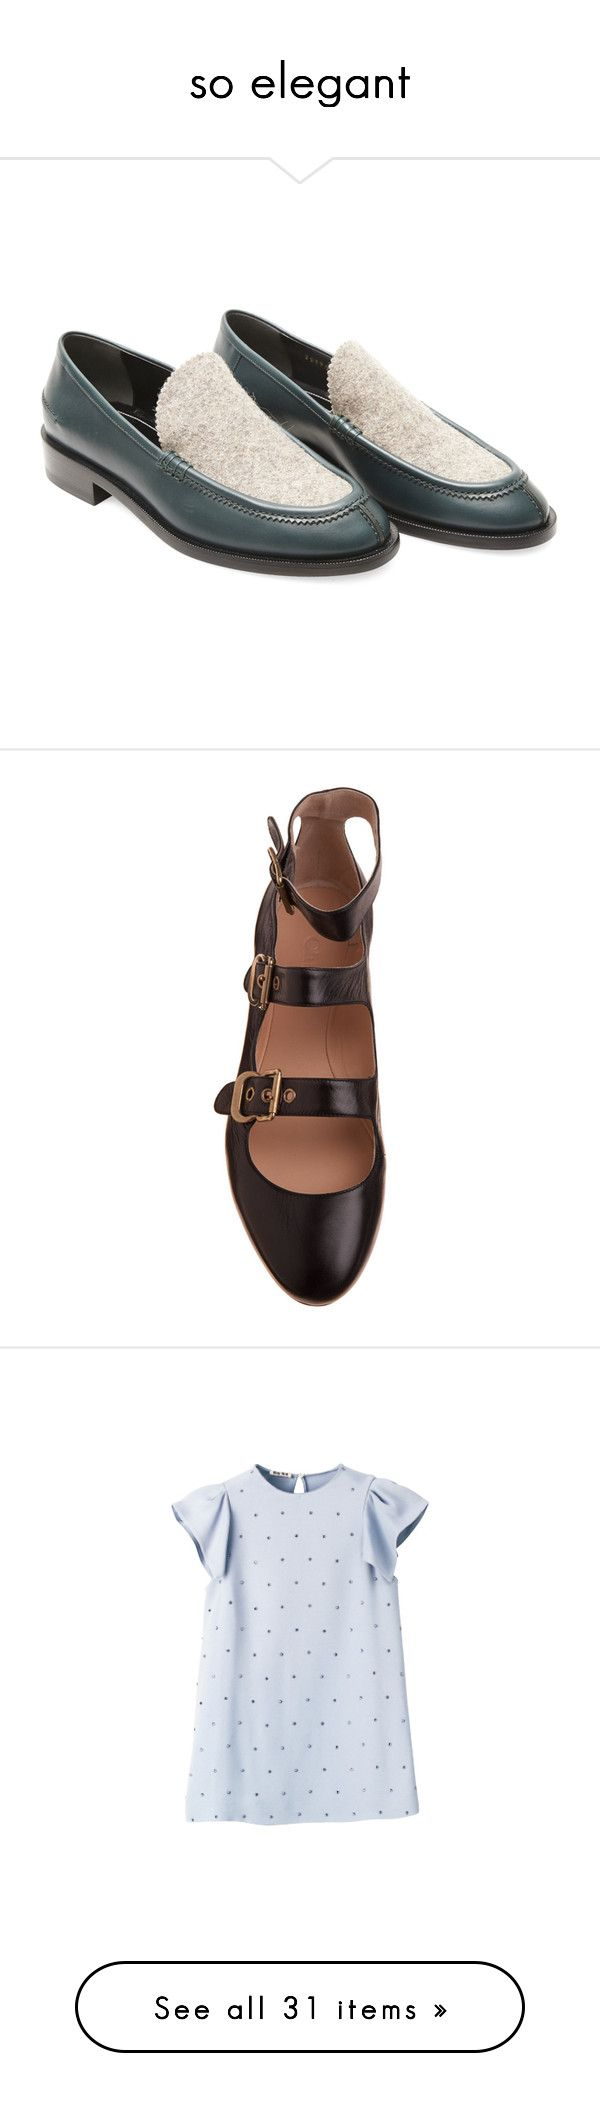 """""""so elegant"""" by xtrvgnx ❤ liked on Polyvore featuring shoes, loafers, chaussures, wool shoes, balenciaga, balenciaga shoes, loafers & moccasins, loafer shoes, flats and sale"""